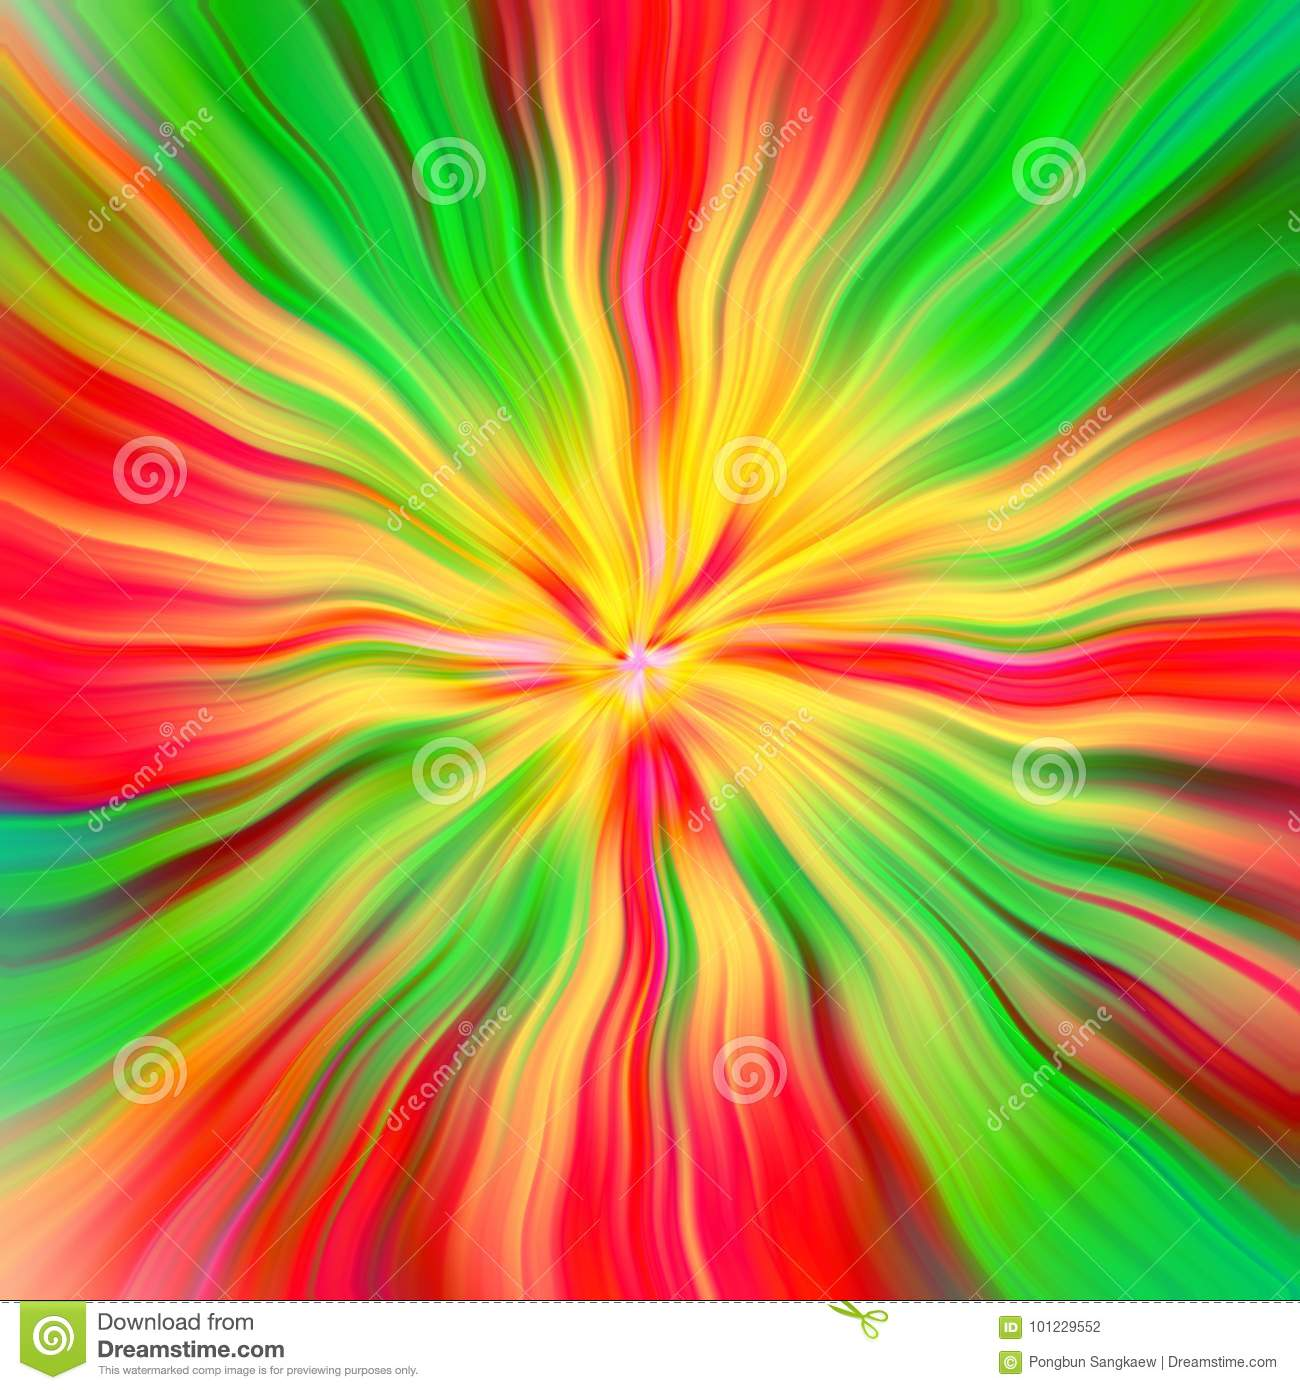 Reggae rasta abstract music sign background